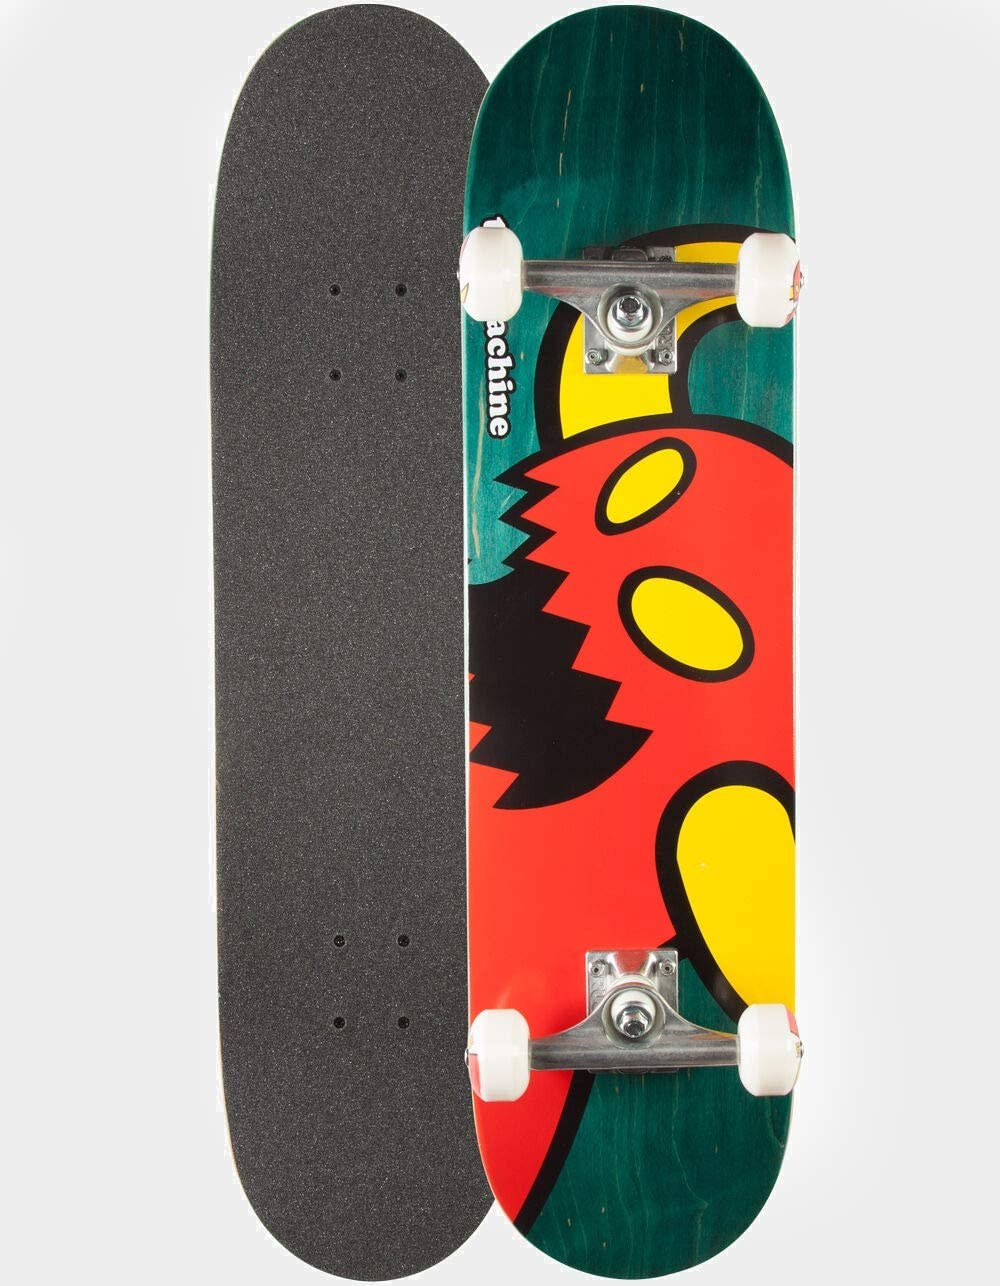 Toy Large discharge sale Oakland Mall Machine Skateboards Complete